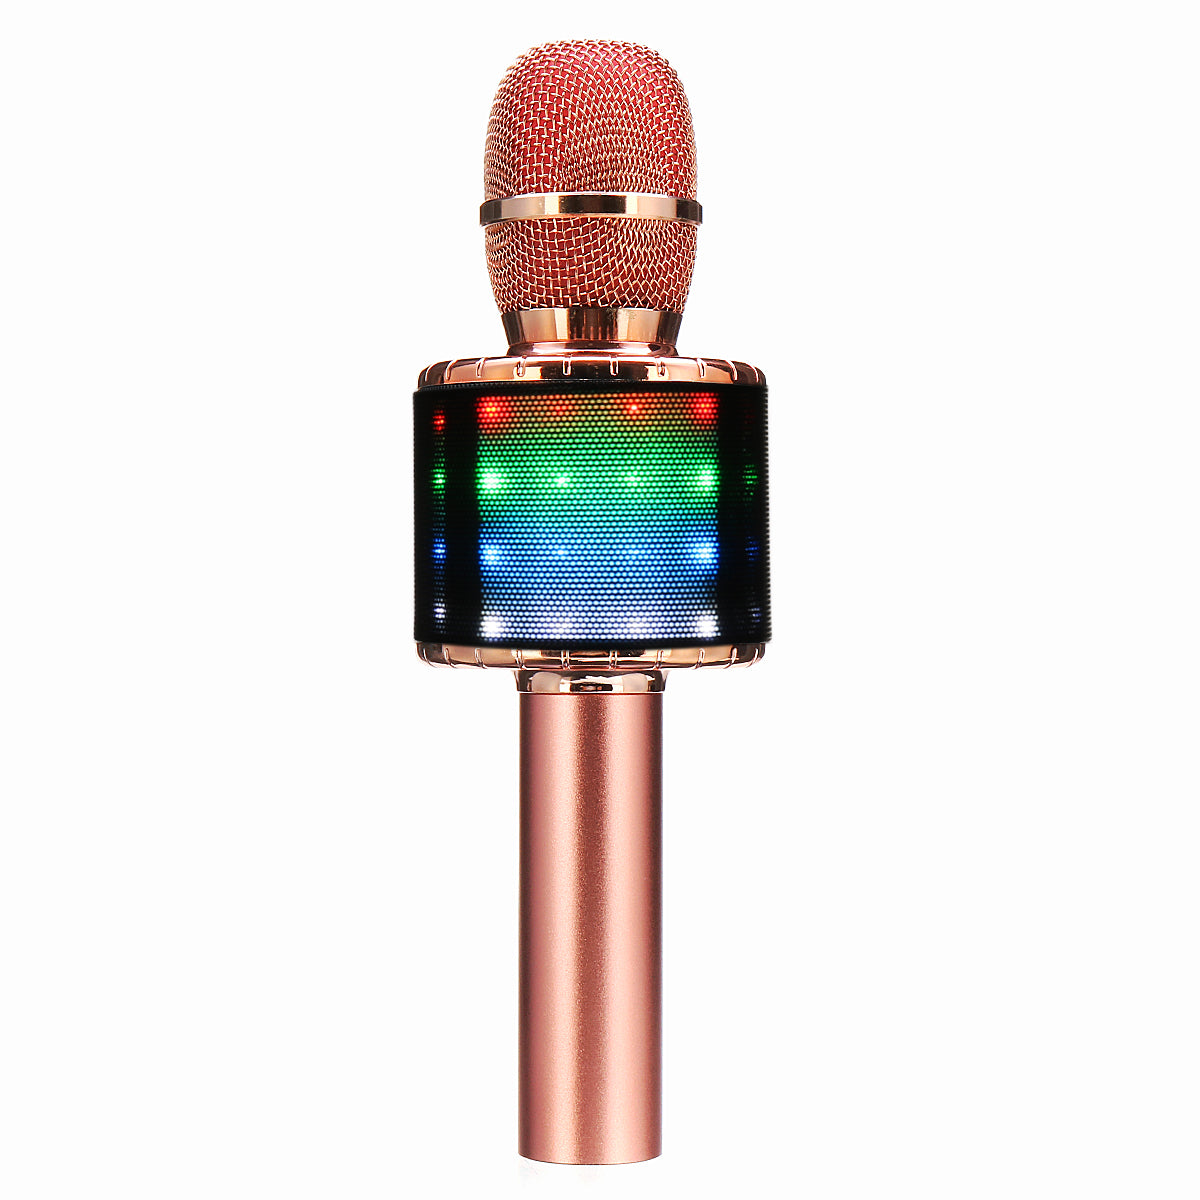 Karaoke Microphone with Wireless Bluetooth Speaker Recorder Portable for iphone Android Smartphone